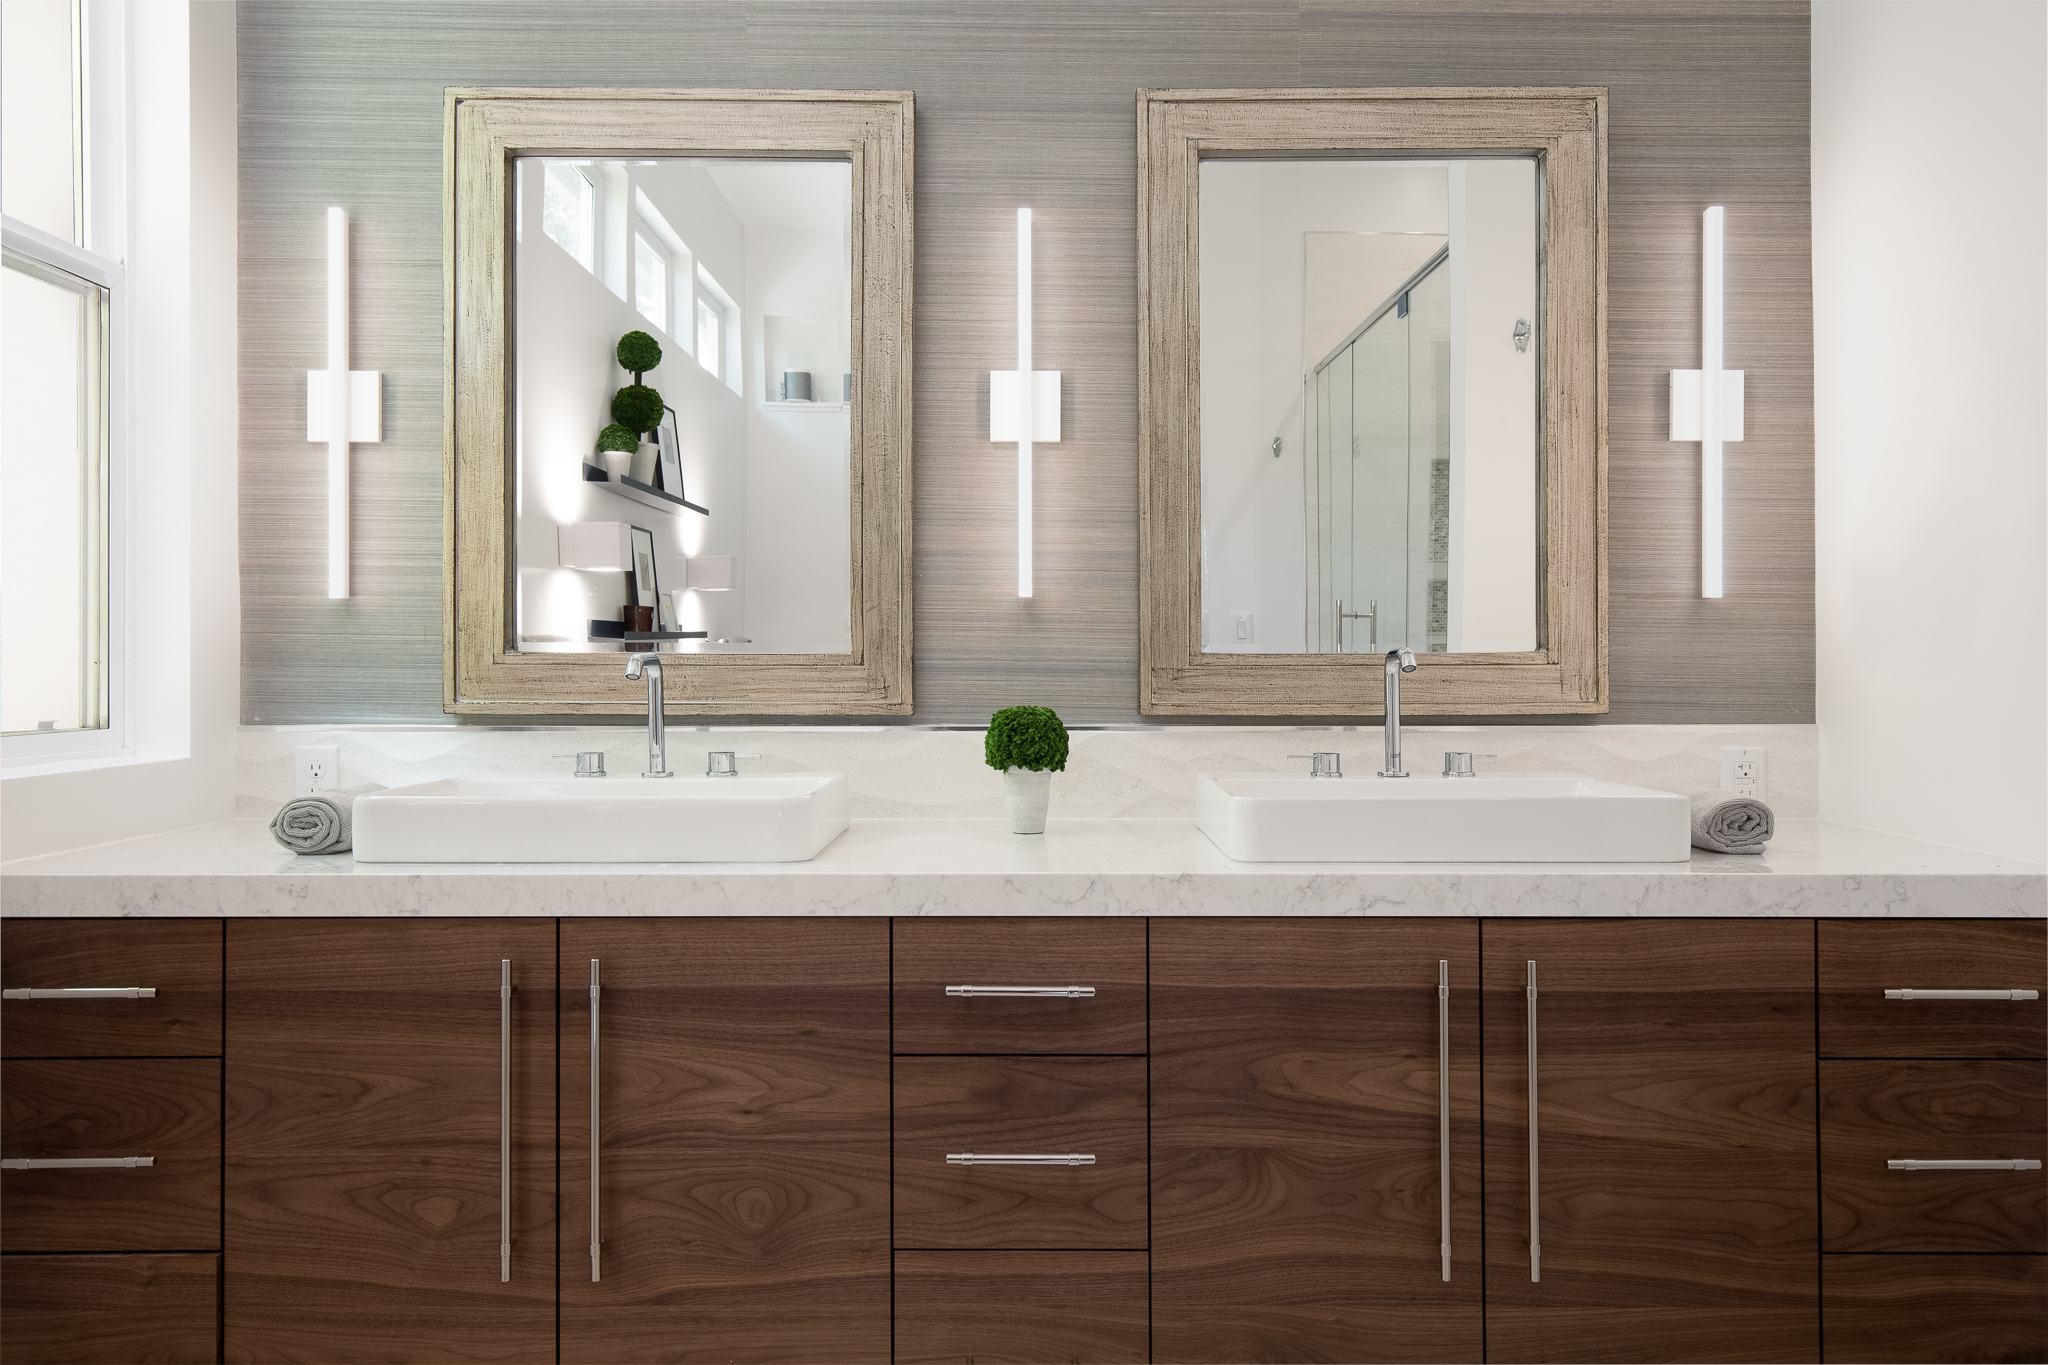 Sinks and Vanity Lights.jpg